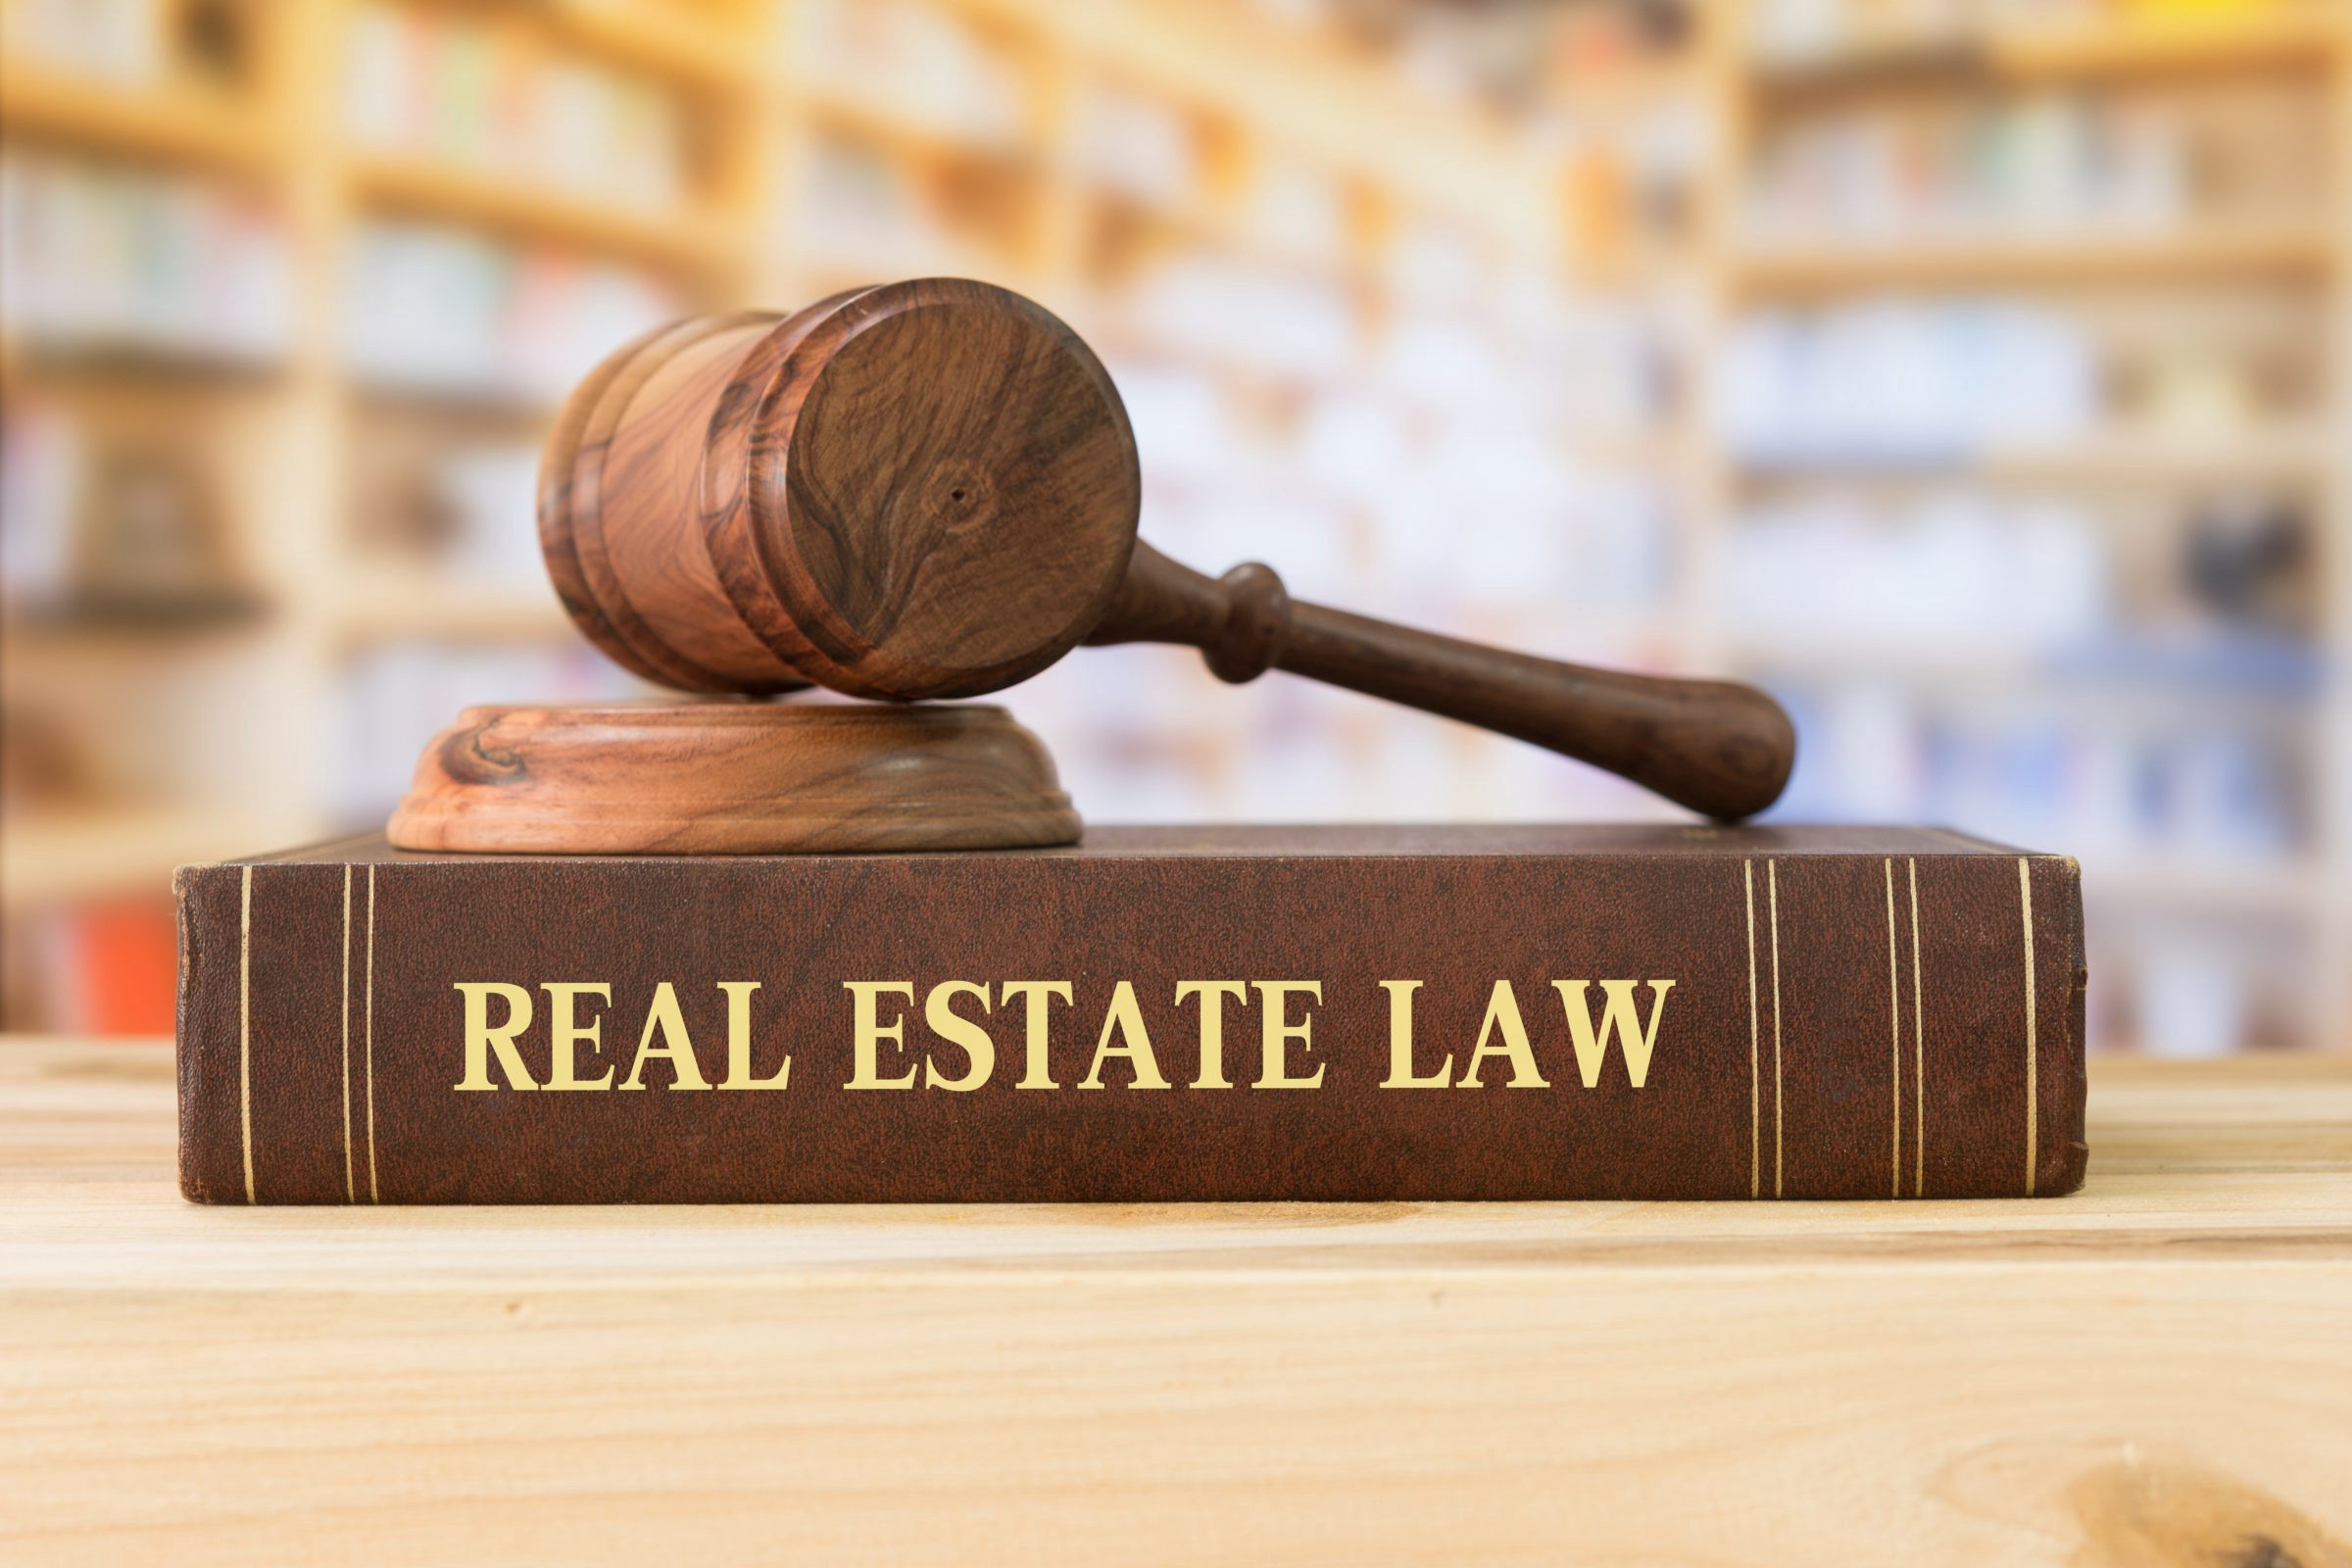 Real Estate Lawyer >> 5 Questions To Ask Real Estate Lawyer Ontario Canada Before